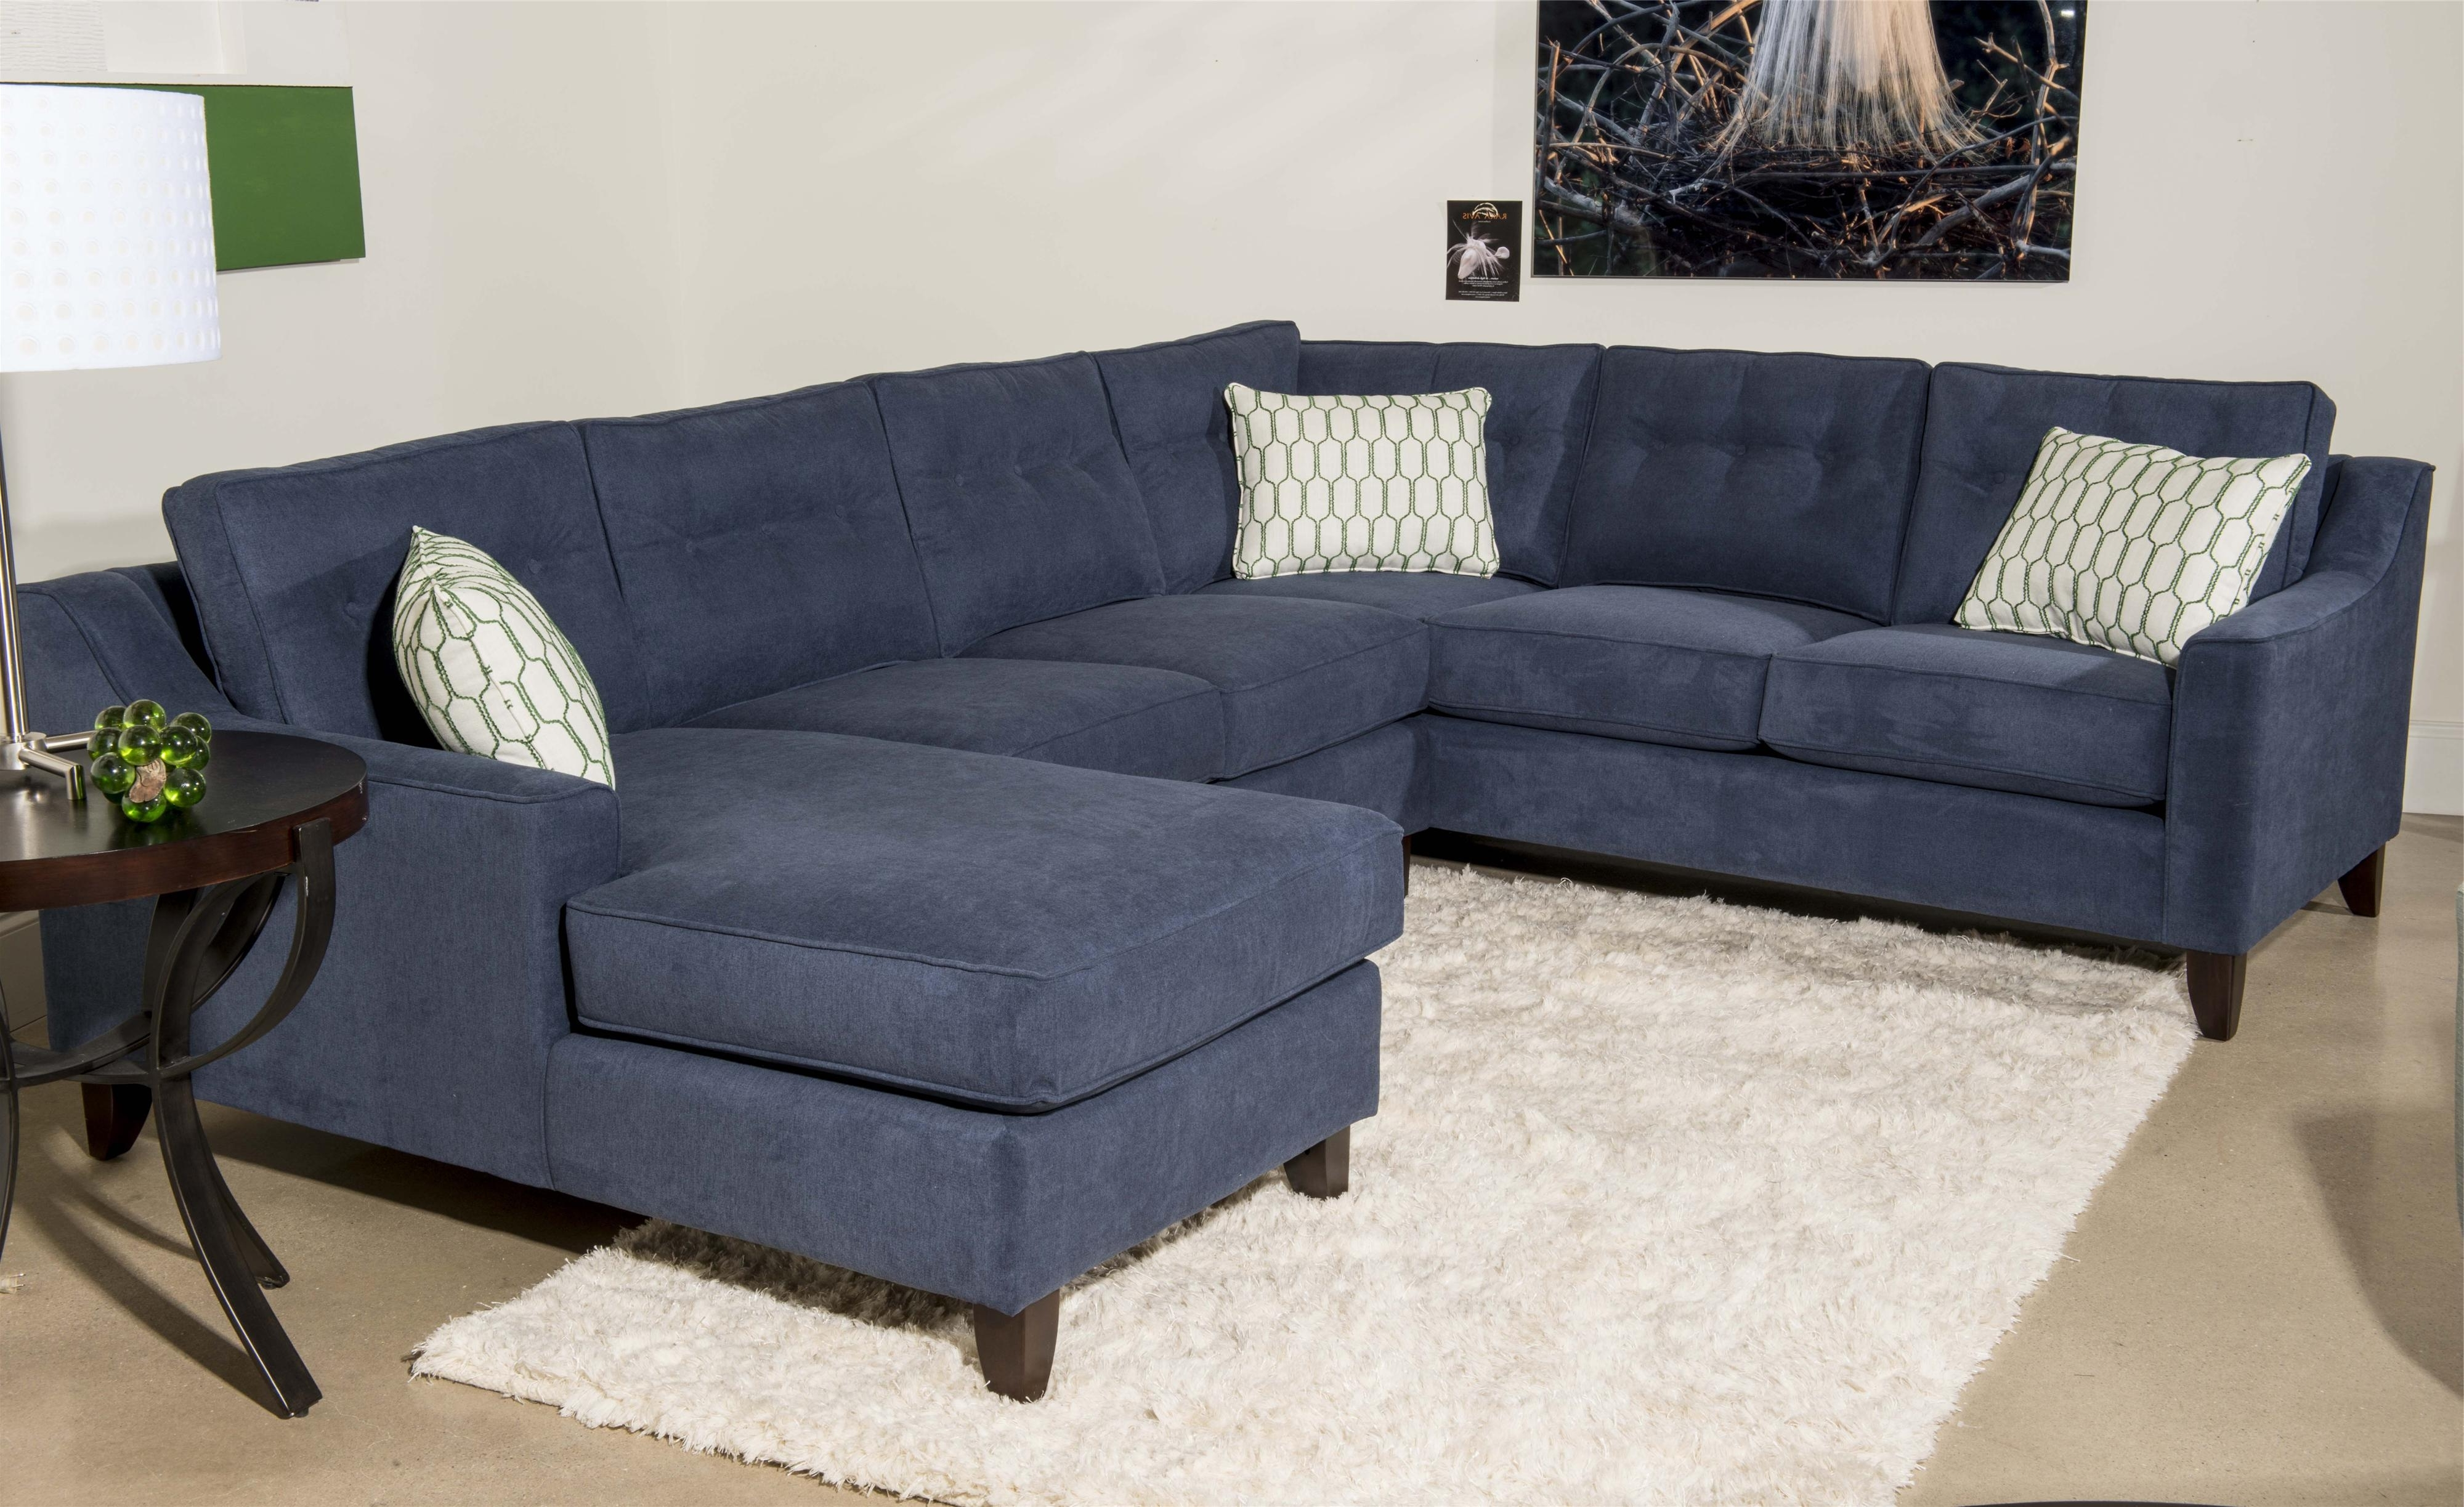 Newest Sectional Chaise Sofas In Klaussner Audrina Contemporary 3 Piece Sectional Sofa With Chaise (View 6 of 15)